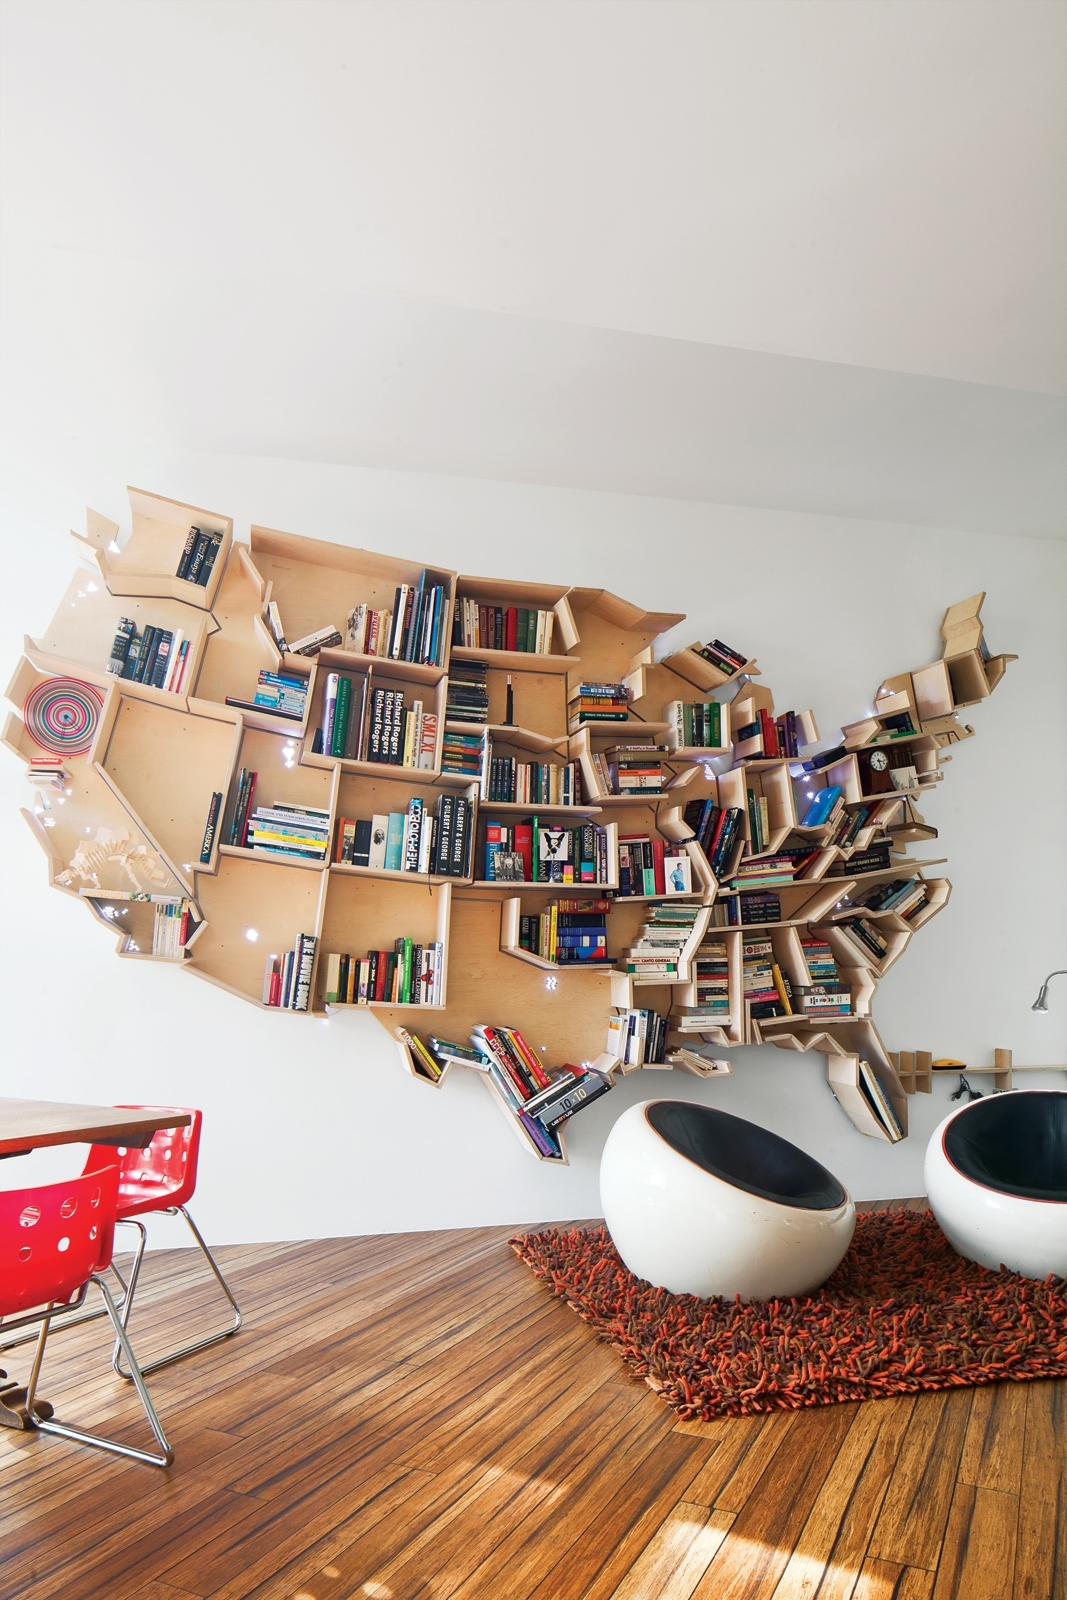 Appealing Us Map Wall Art Designs Wooden Signs United States My Wall in Us Map Wall Art (Image 3 of 20)